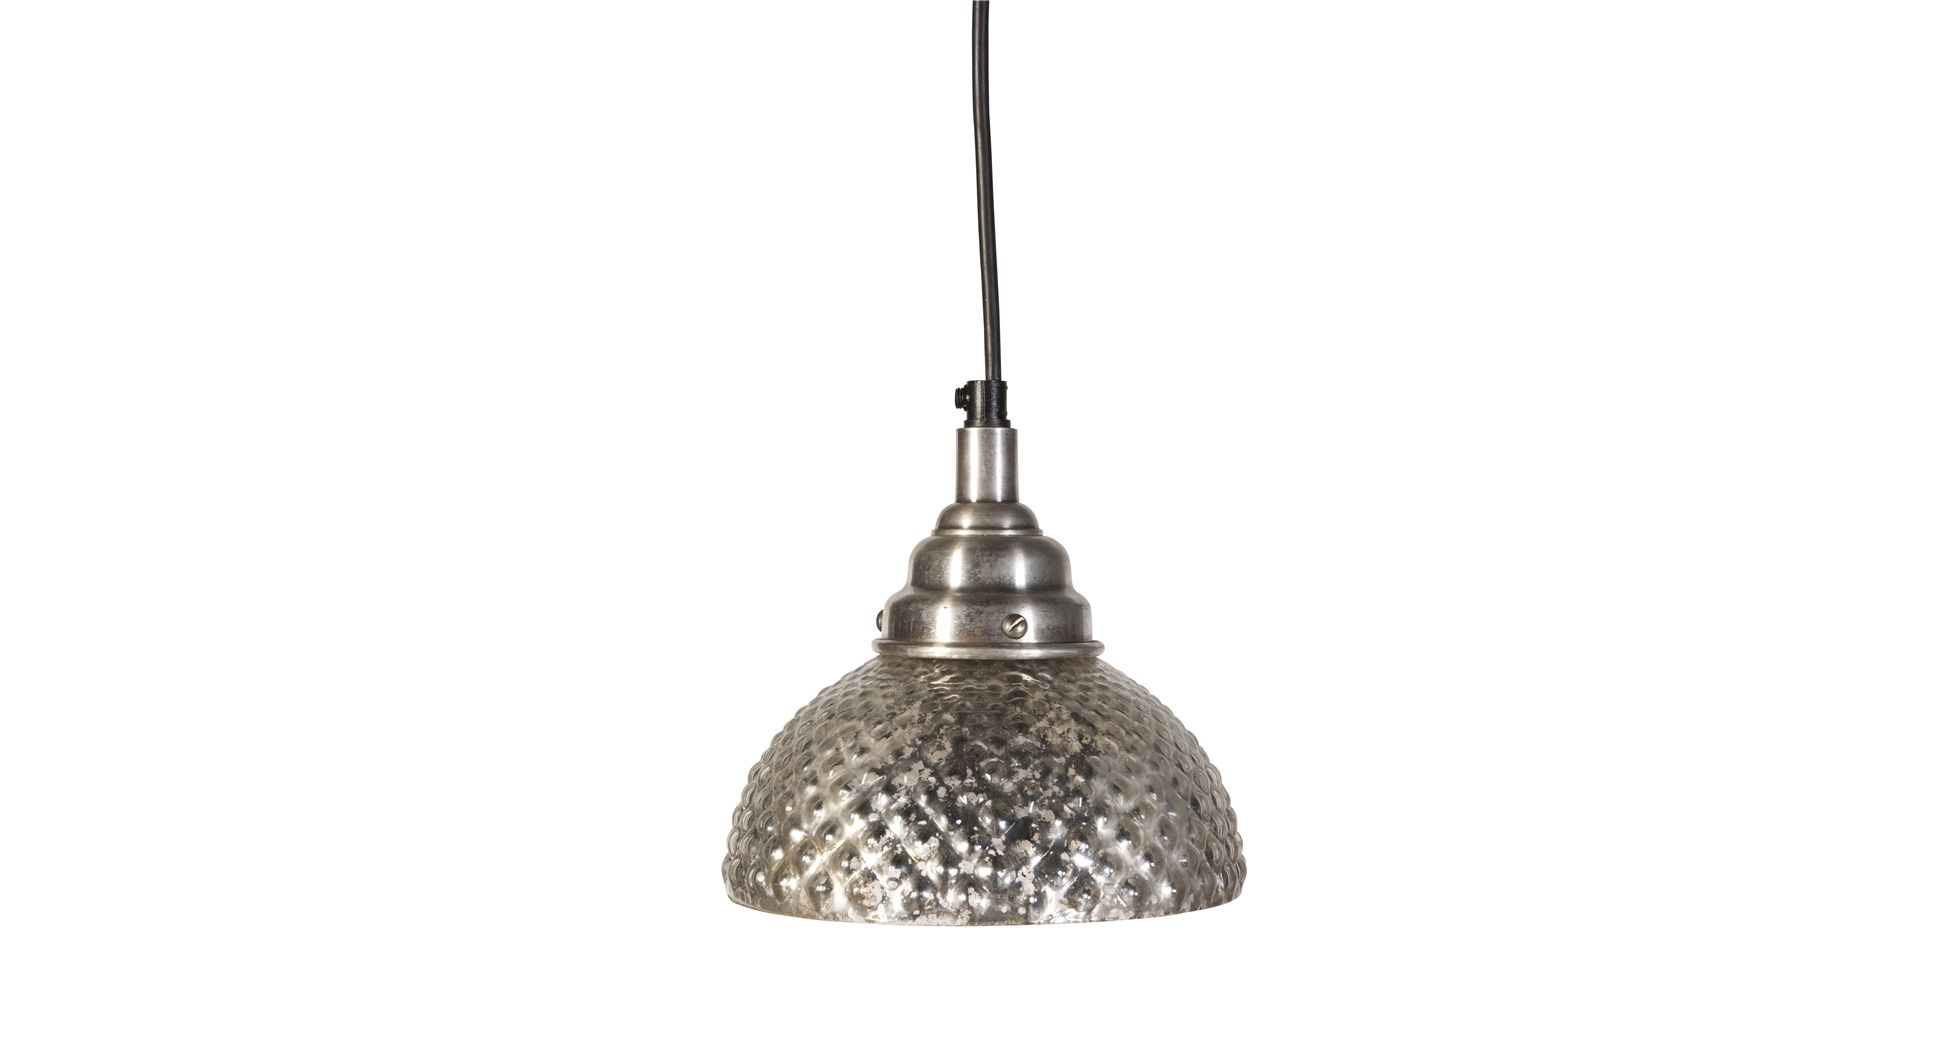 Mercury Glass Pendant Light Fixture Amusing Lightingmercuryglasspendantlightsatanthropologiechicour Design Ideas